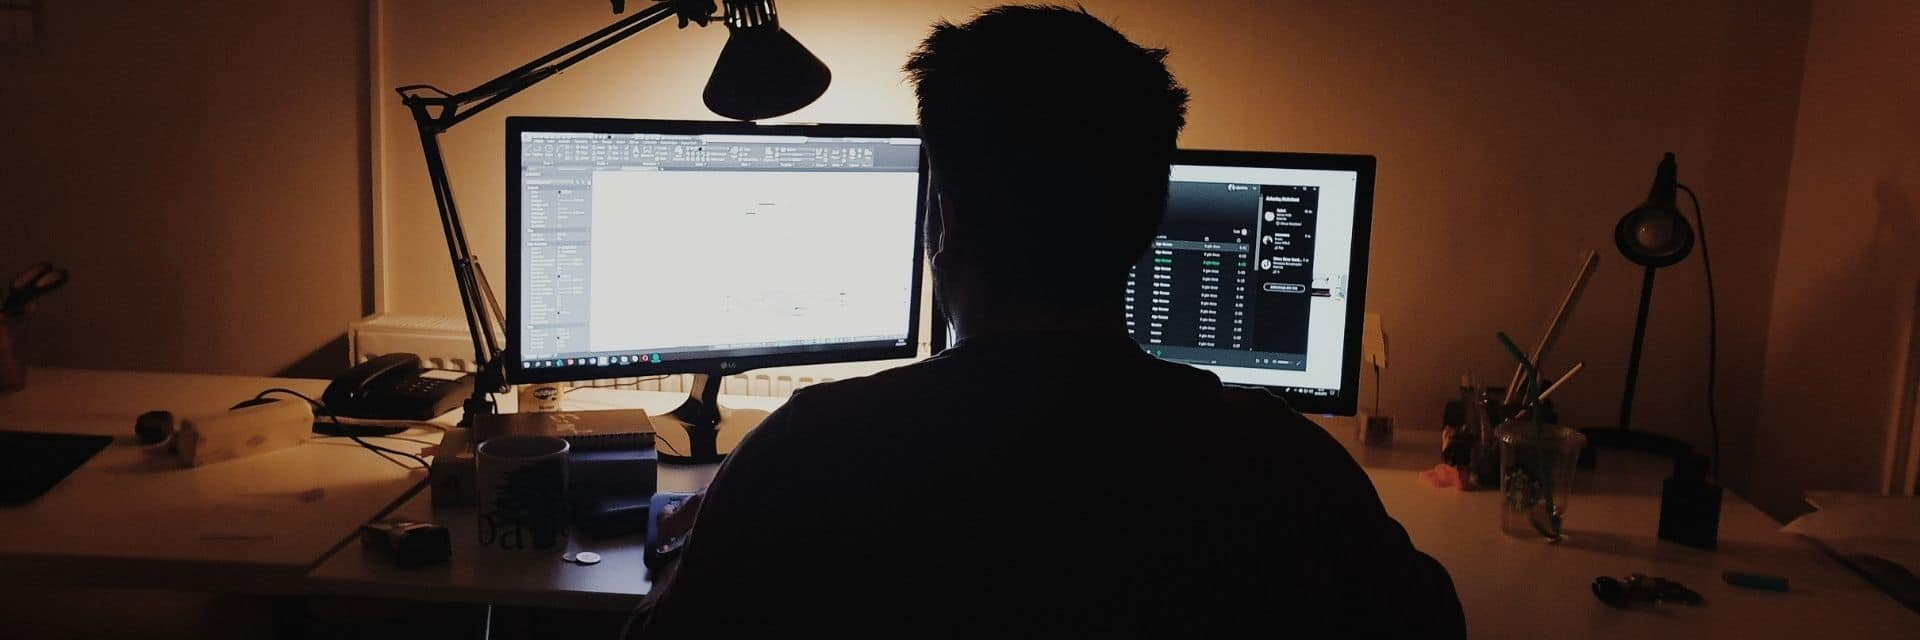 Man stares at two screens while working from home